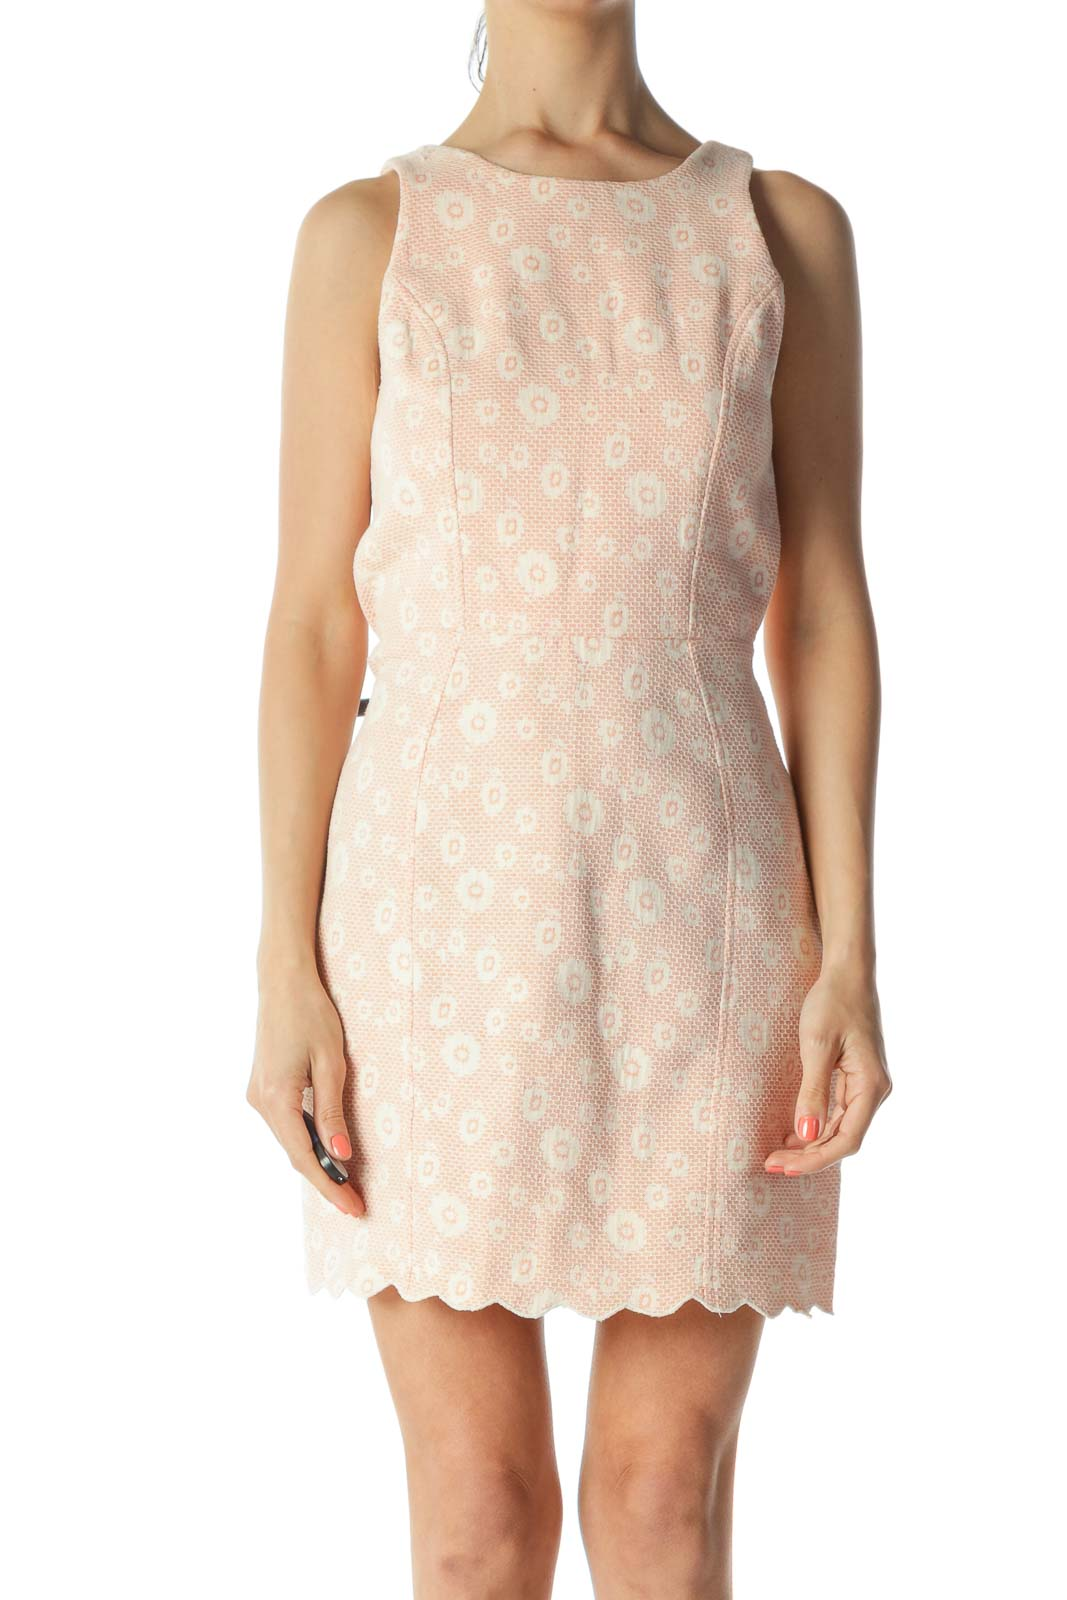 Orange/Cream Floral-Knit-Body Back-Cut-Out and Snap-Buttons Dress